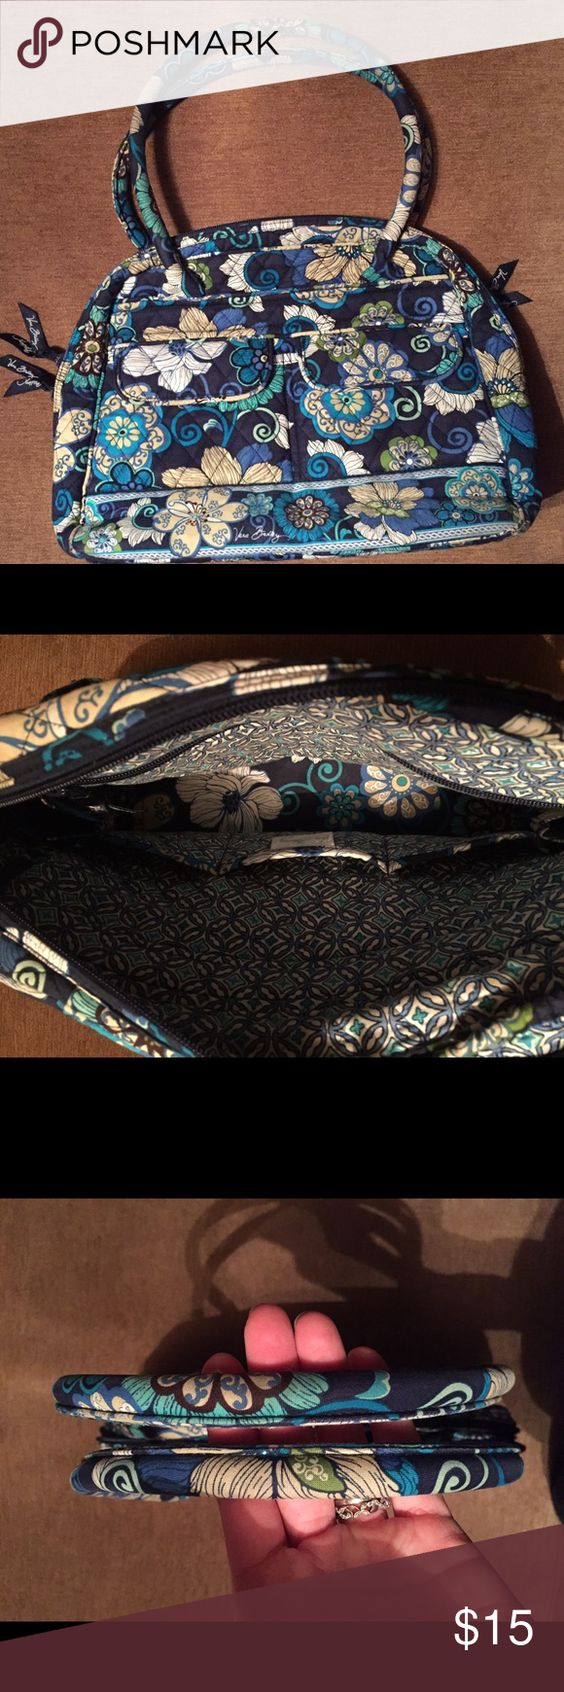 Vera Bradley Bowler Bag- in good condition Vera Bradley Bowler Bag- smoke free home, no stains, small spot of wearing (see pic #4), otherwise in great condition Vera Bradley Bags